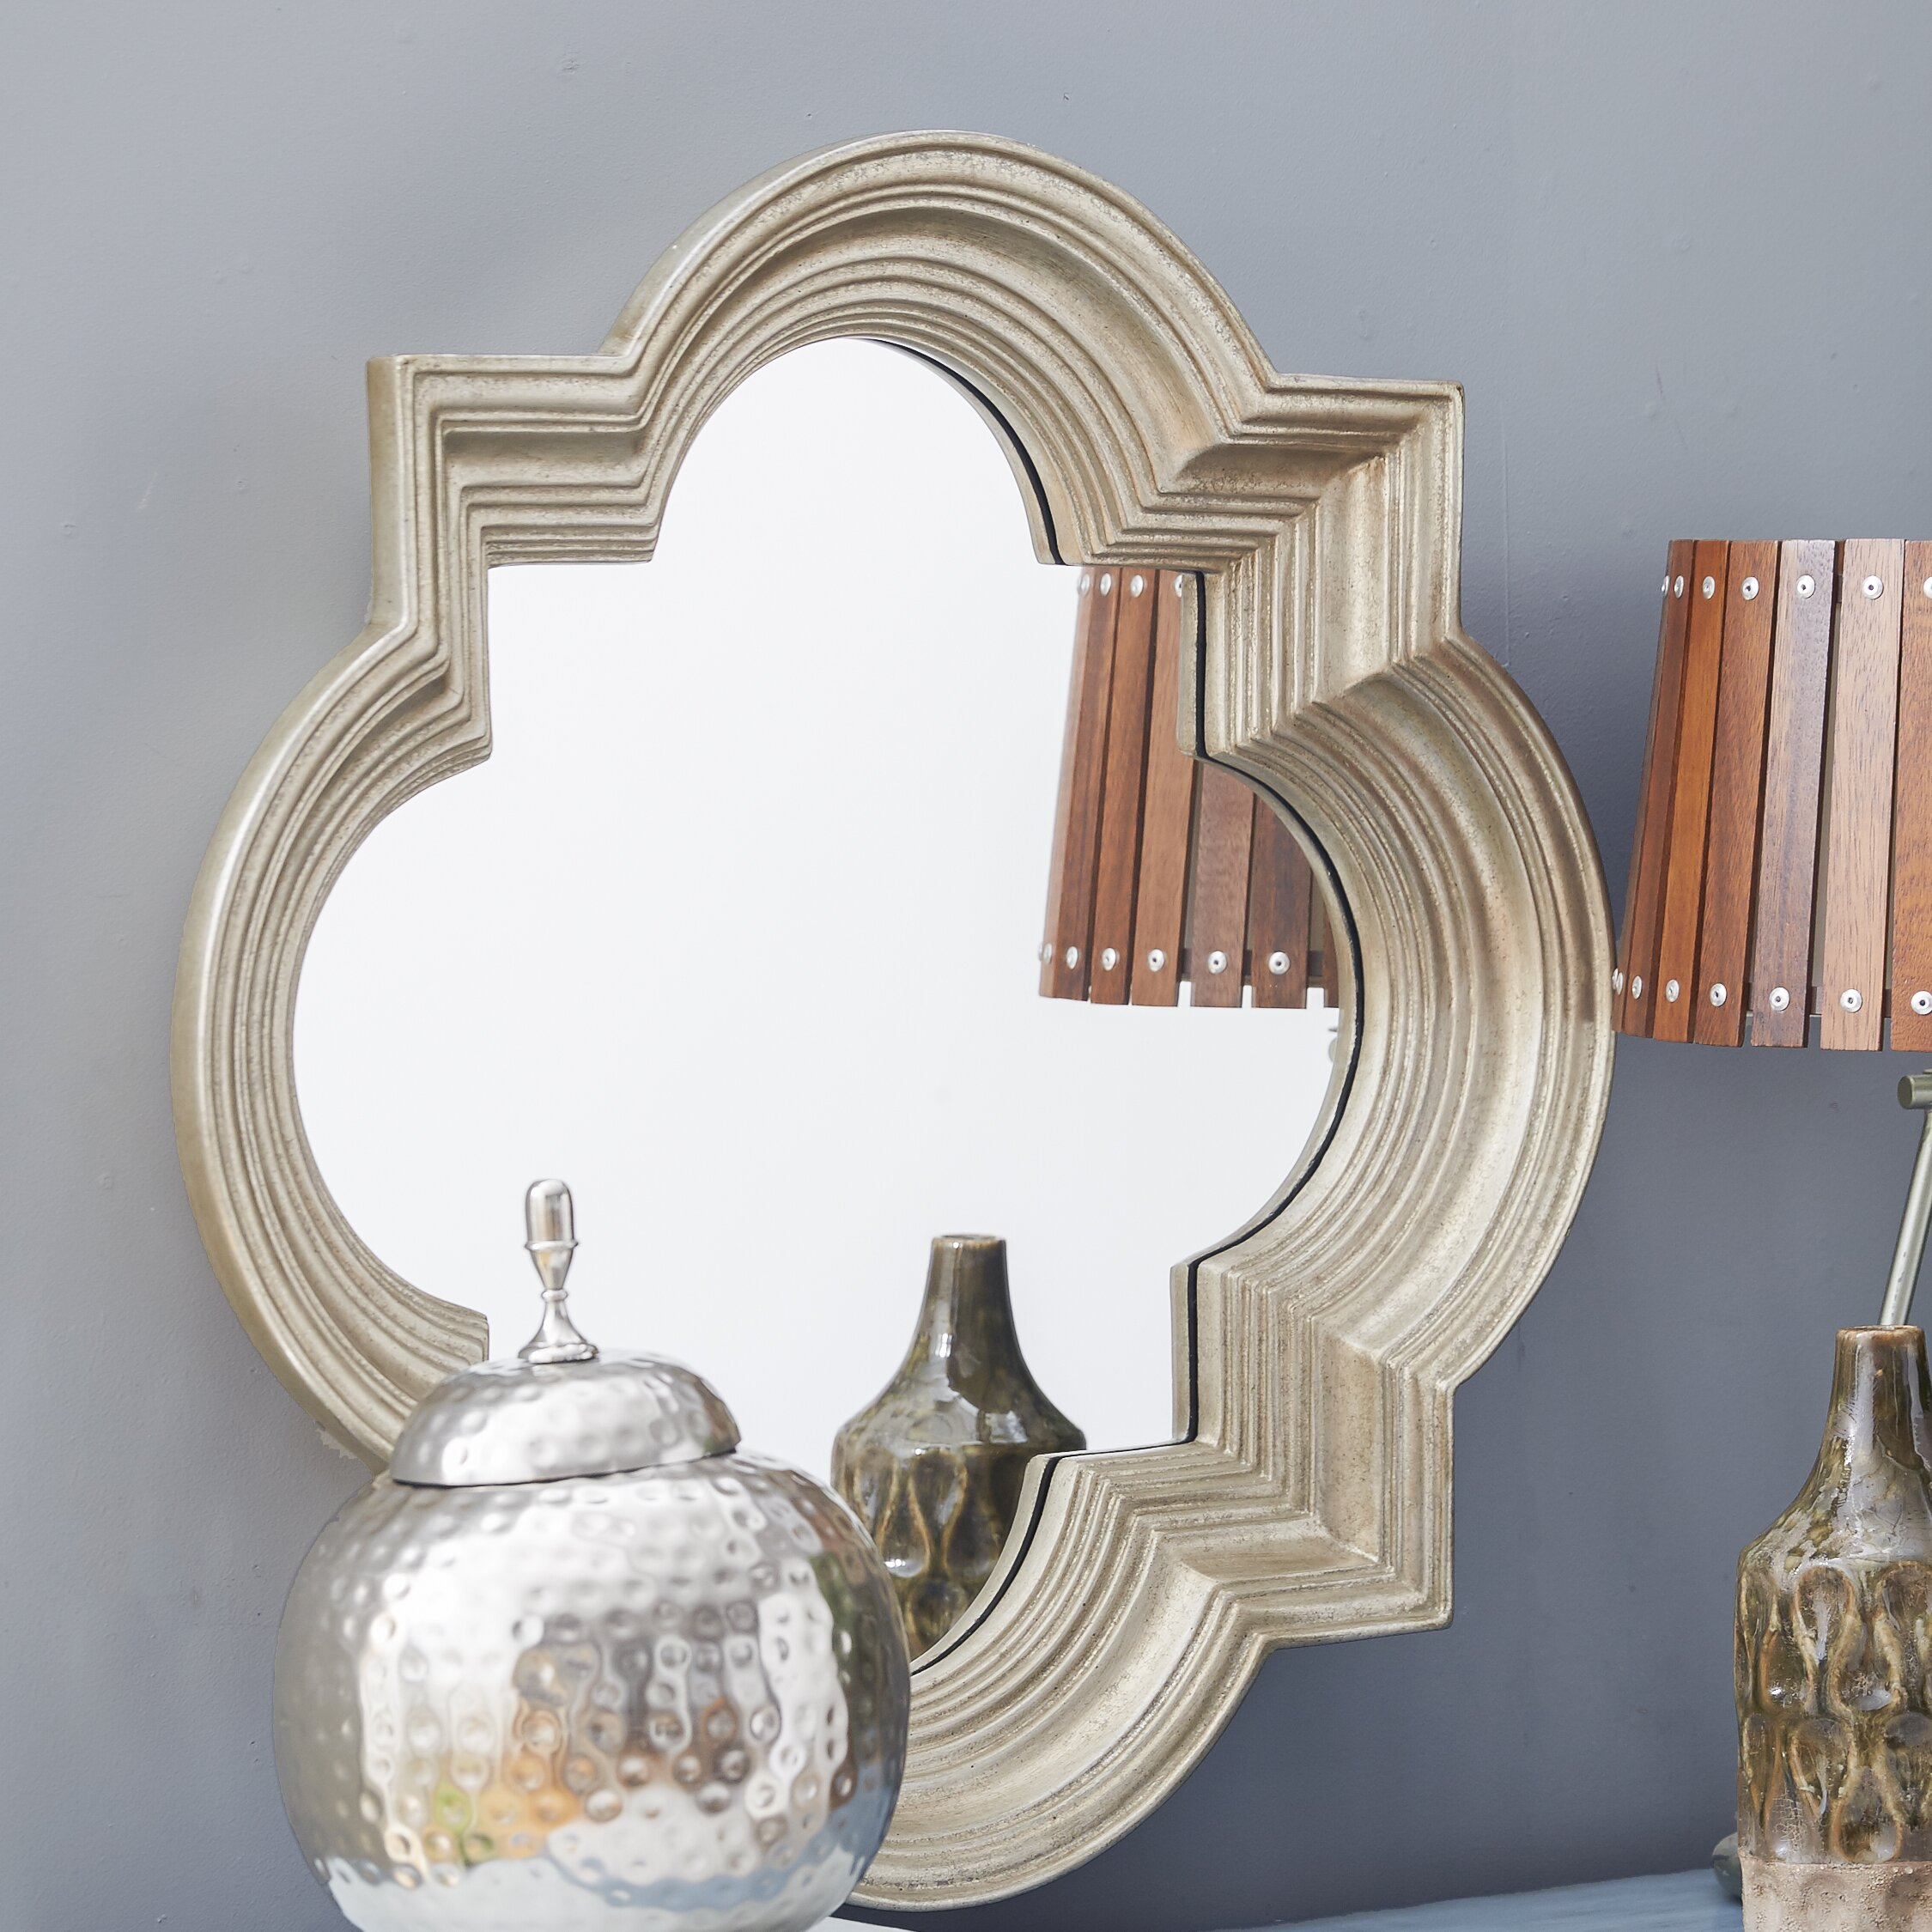 Osp designs gatsby decorative beveled wall mirror for Decorative wall mirrors